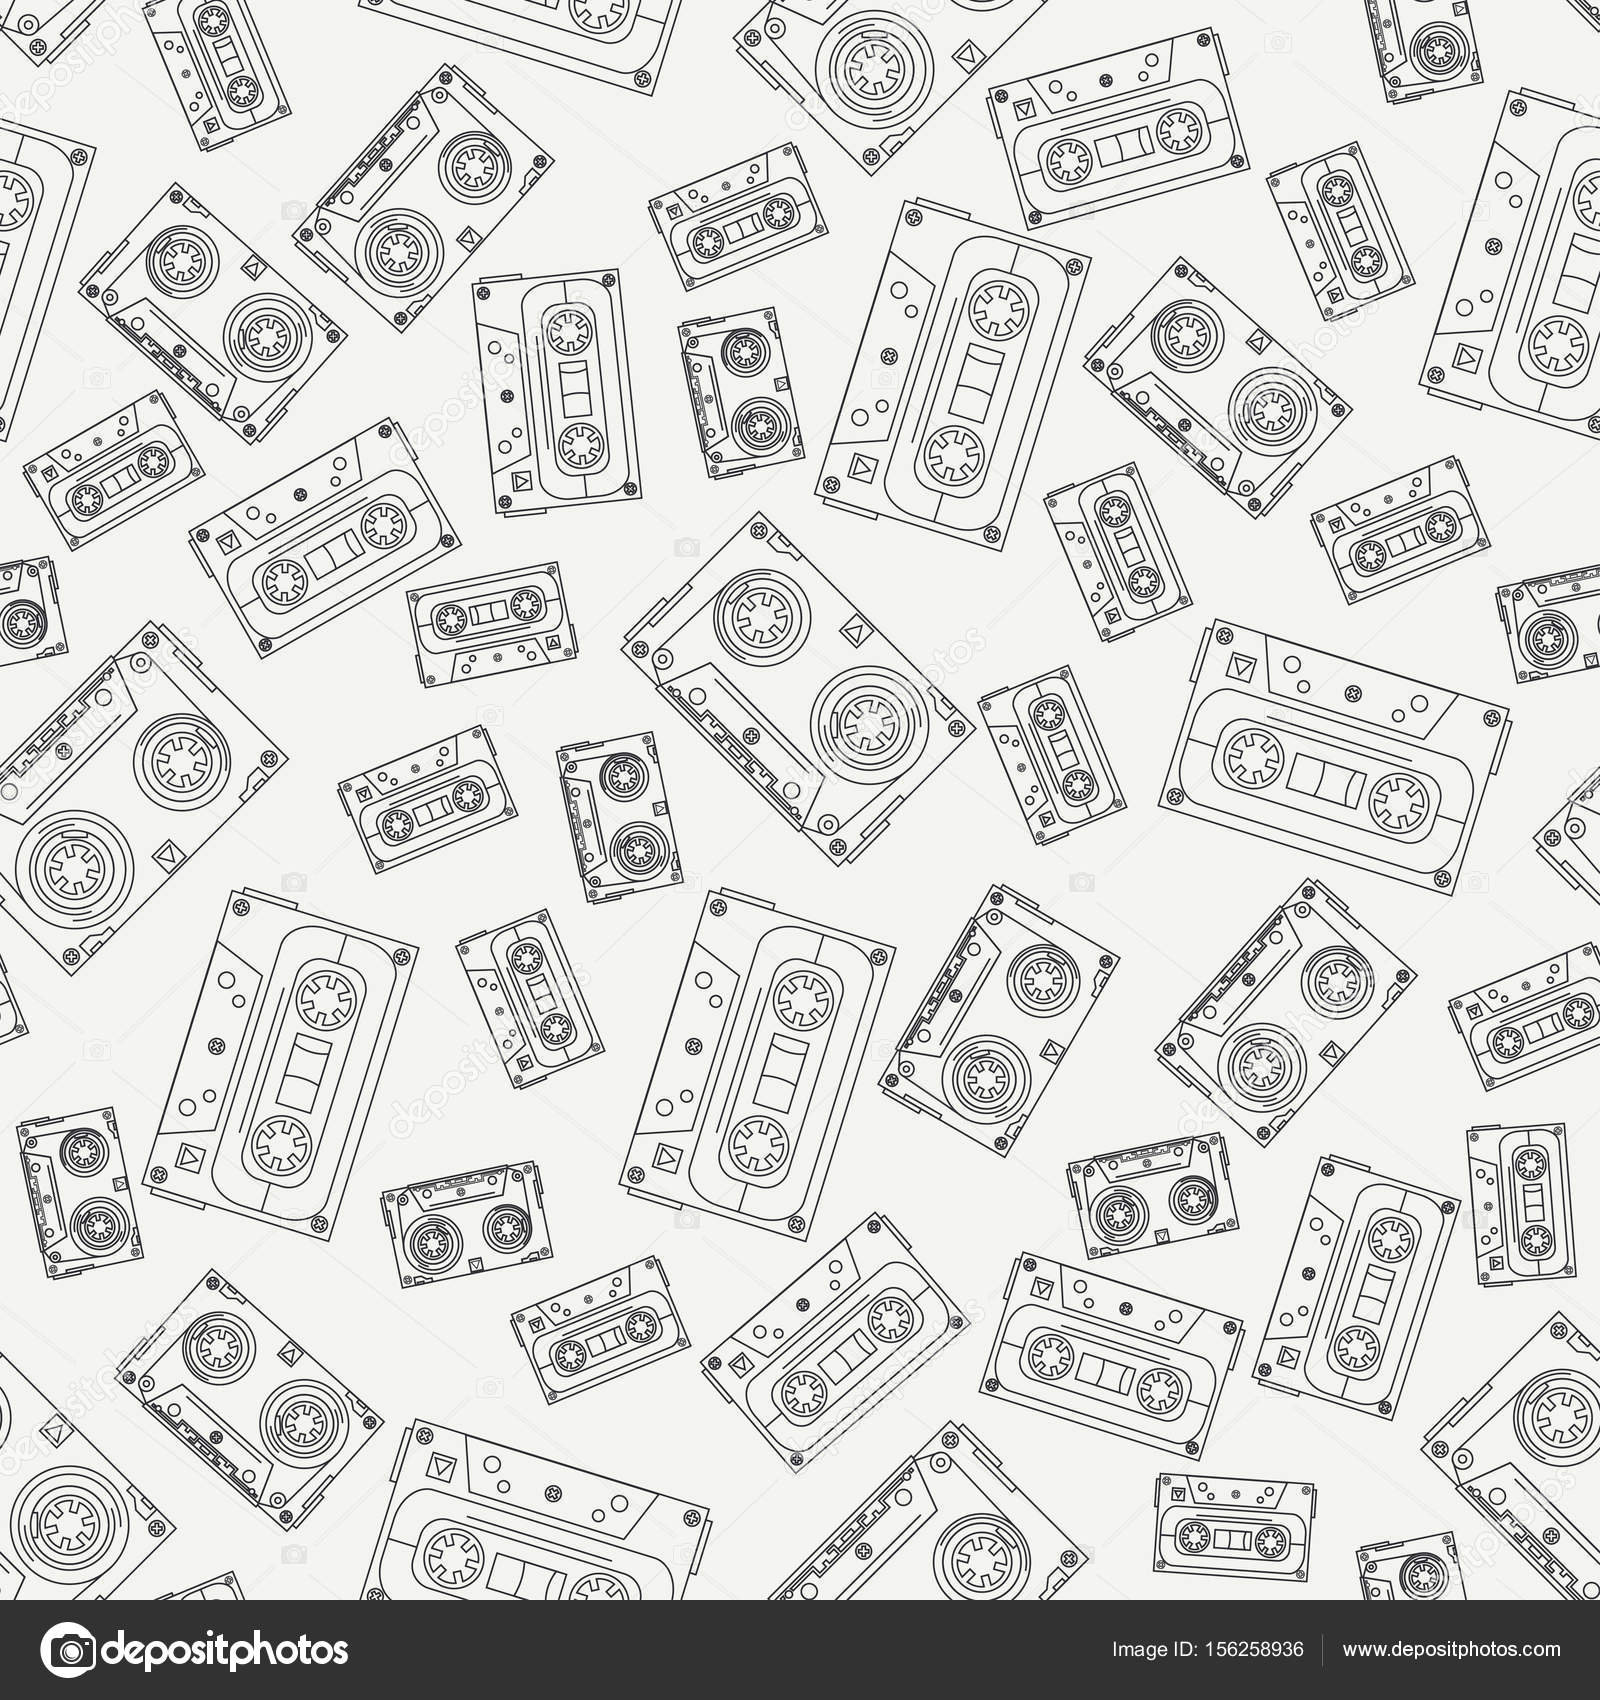 Must see Wallpaper Music Hipster - depositphotos_156258936-stock-illustration-seamless-background-pattern-hipster-style  Pic_1009794.jpg